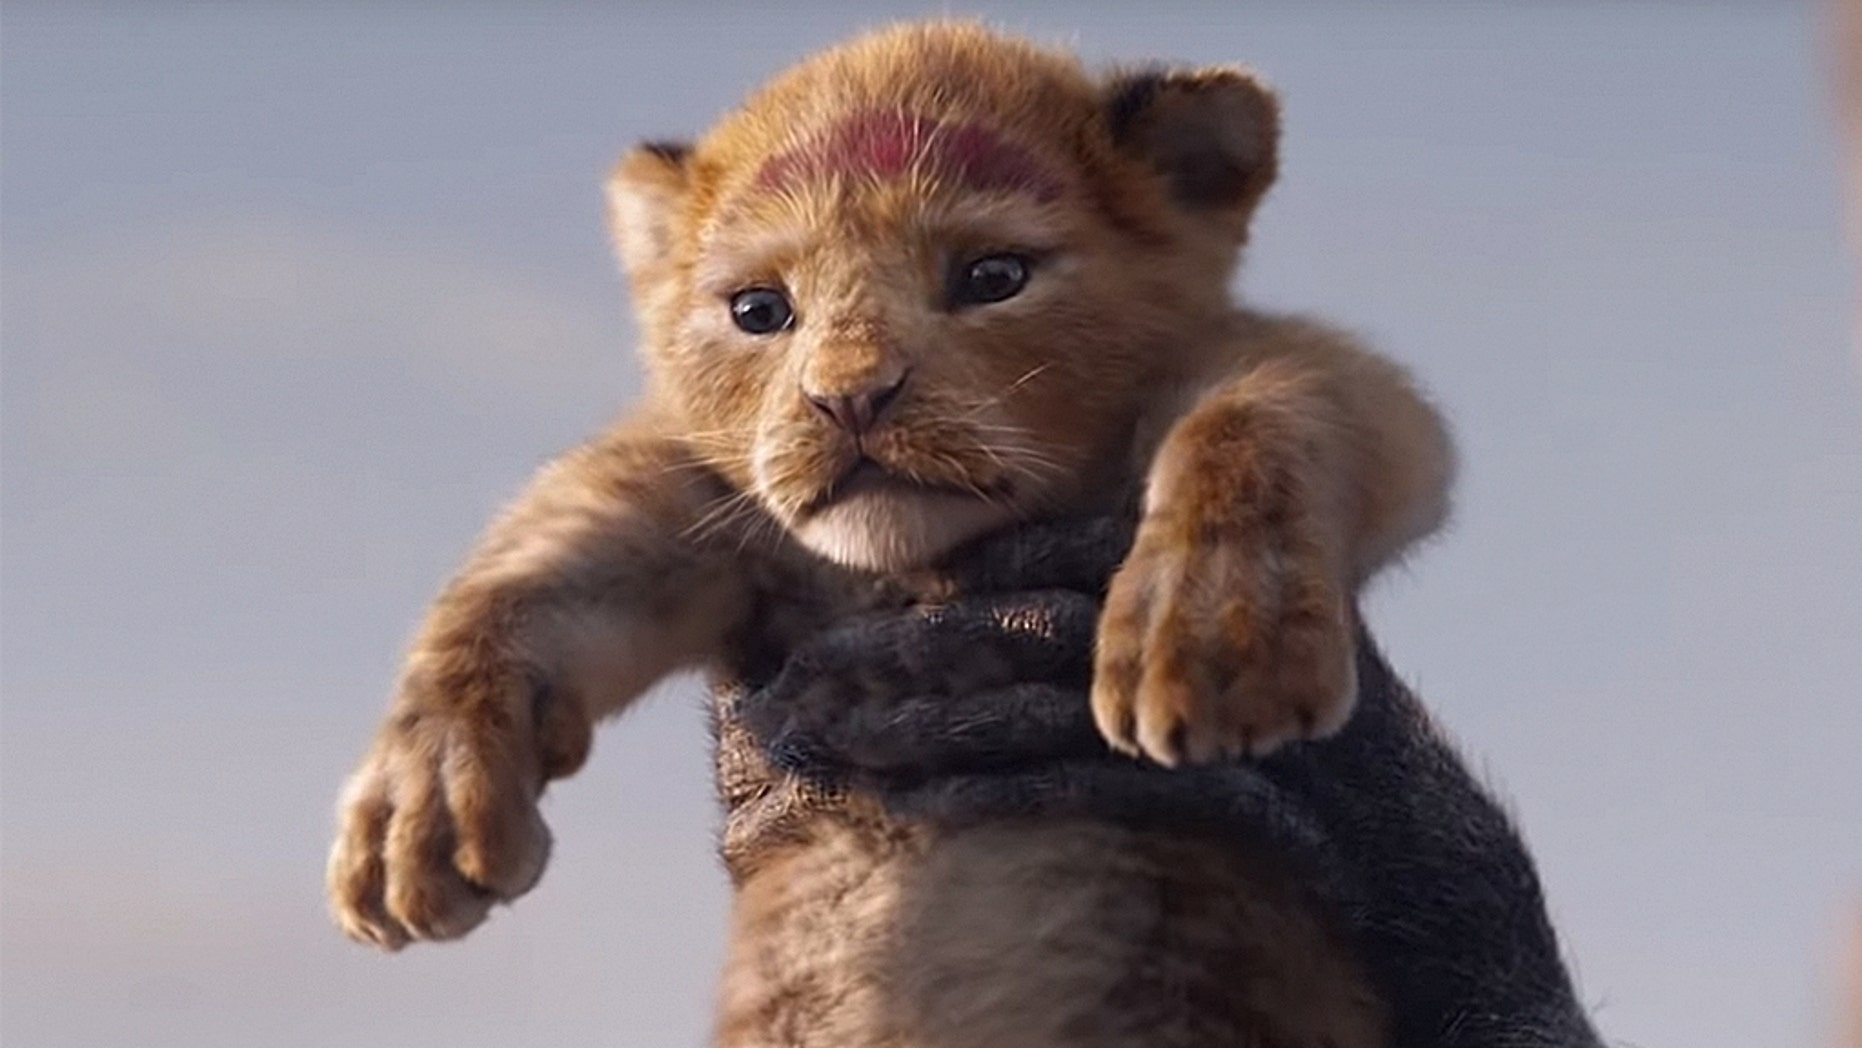 First Look at 'Lion King' Released